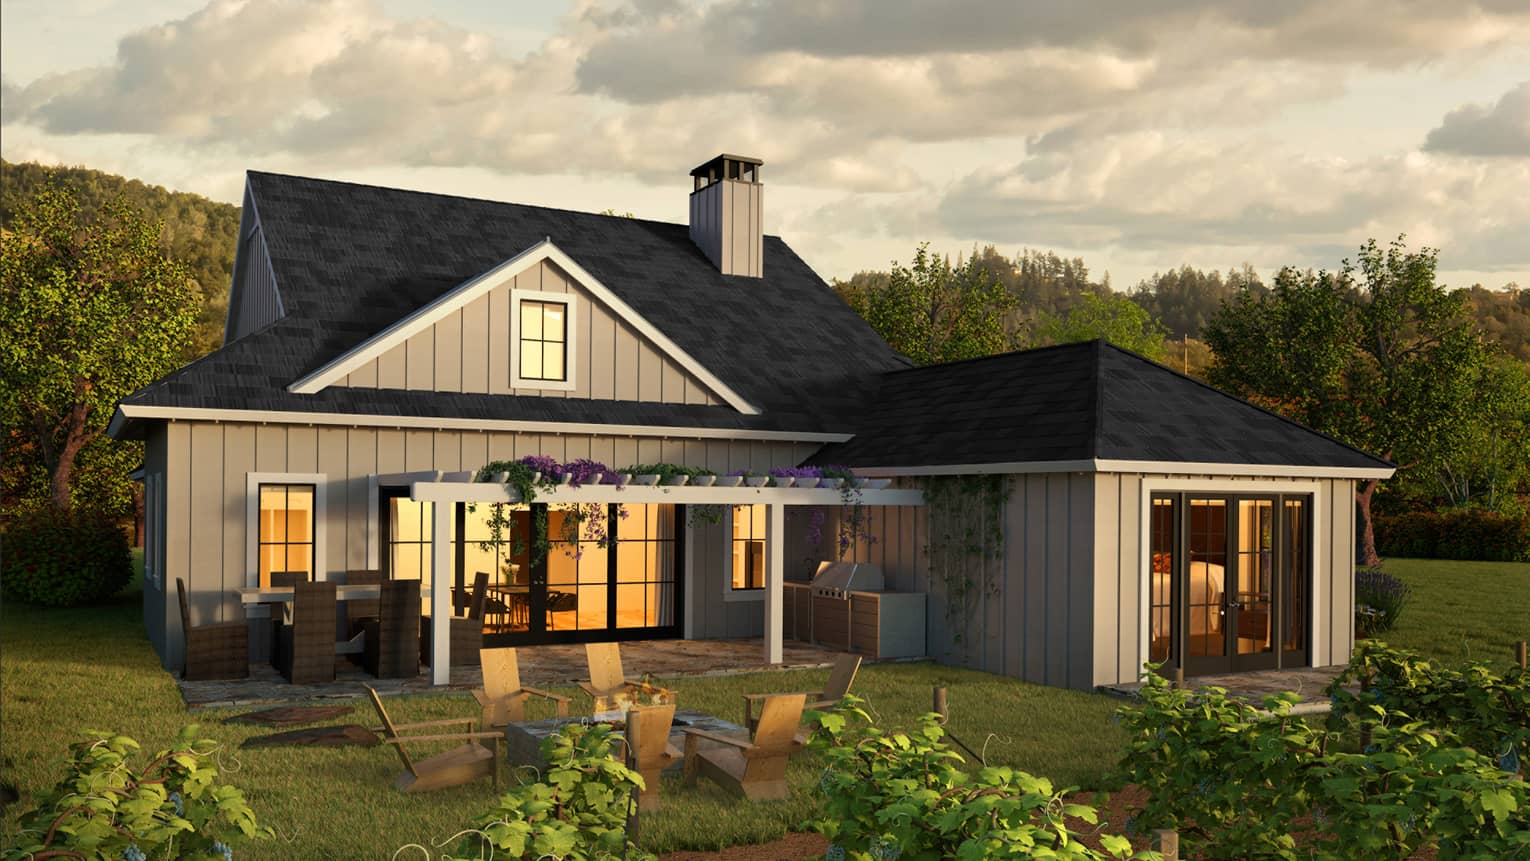 Rendering of four bedroom residence exterior with patio table on lawn by vineyard